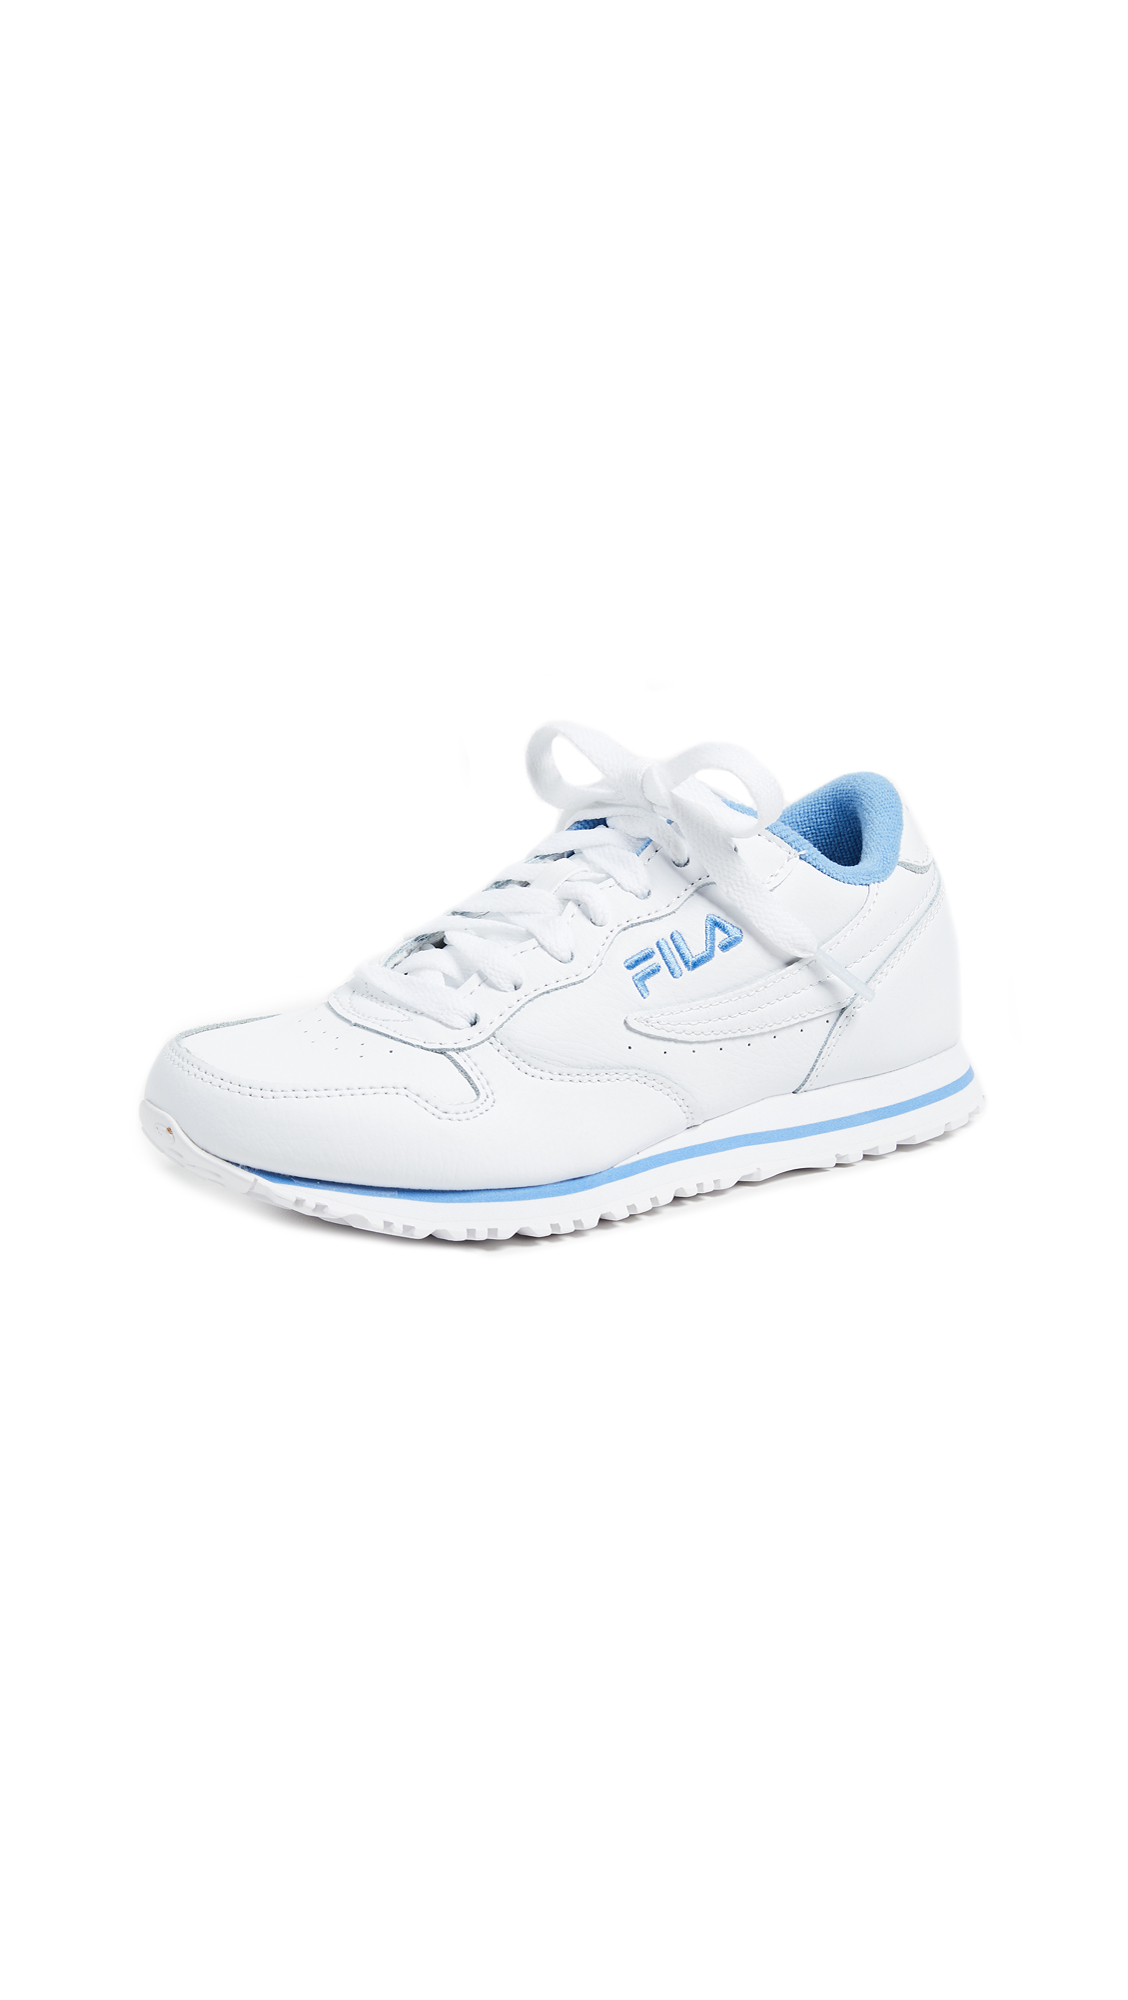 Fila Euro Jogger II - White/Lake Blue/White